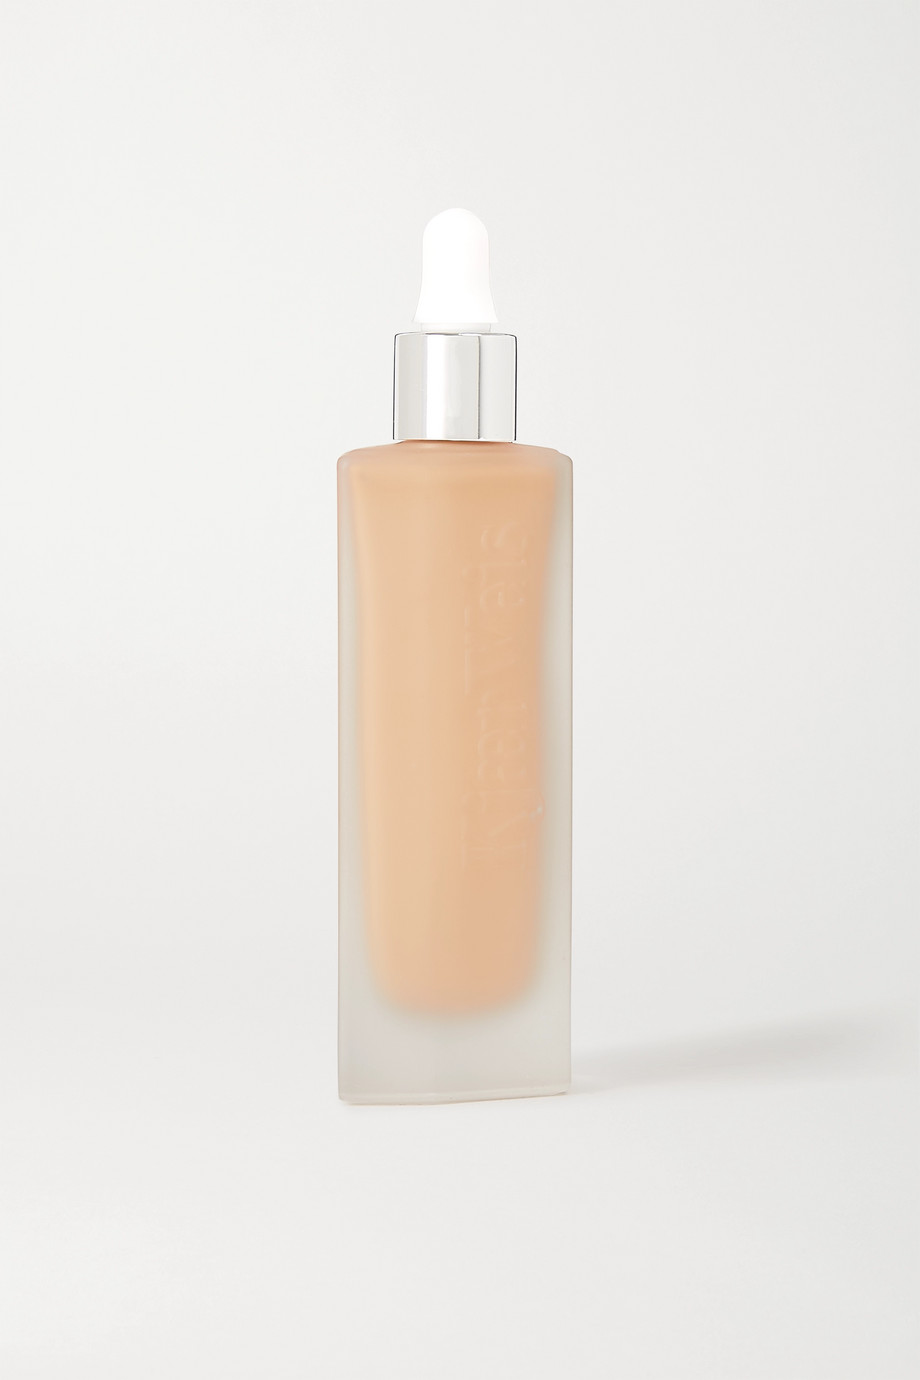 KJAER WEIS Invisible Touch Liquid Foundation - Weightless F120, 30ml